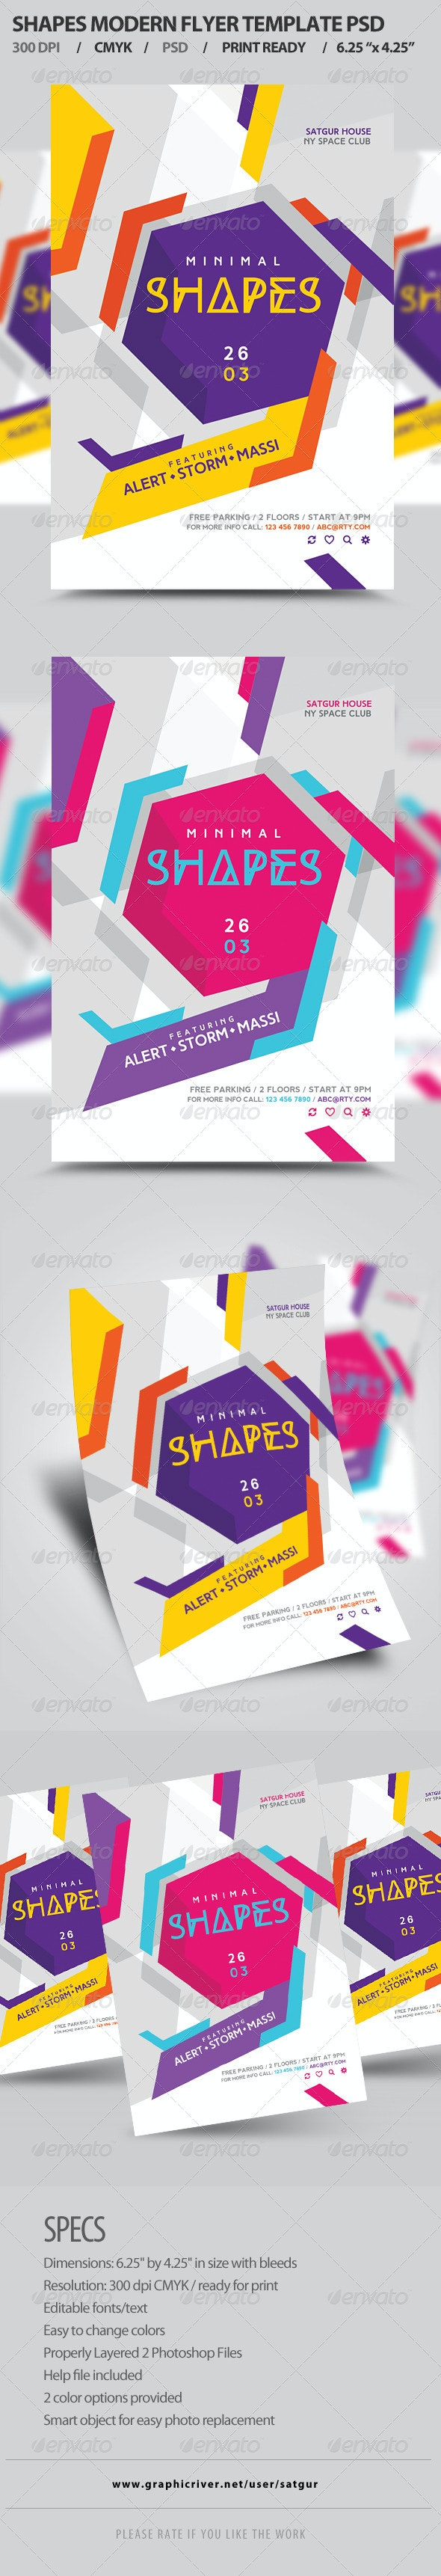 Shapes Flyer Template PSD - Clubs & Parties Events